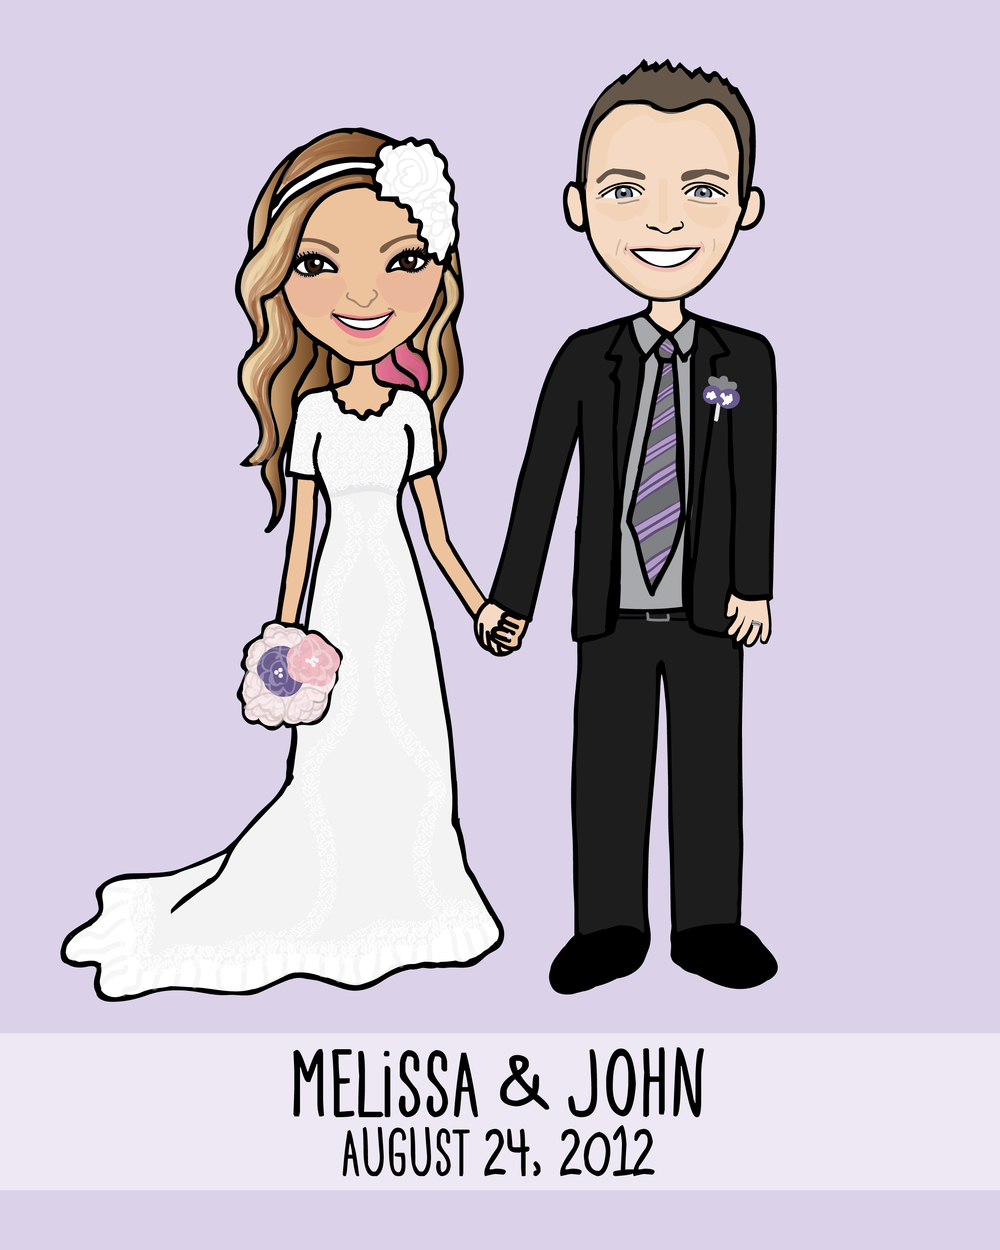 melissa_and_john_custom_final.jpg